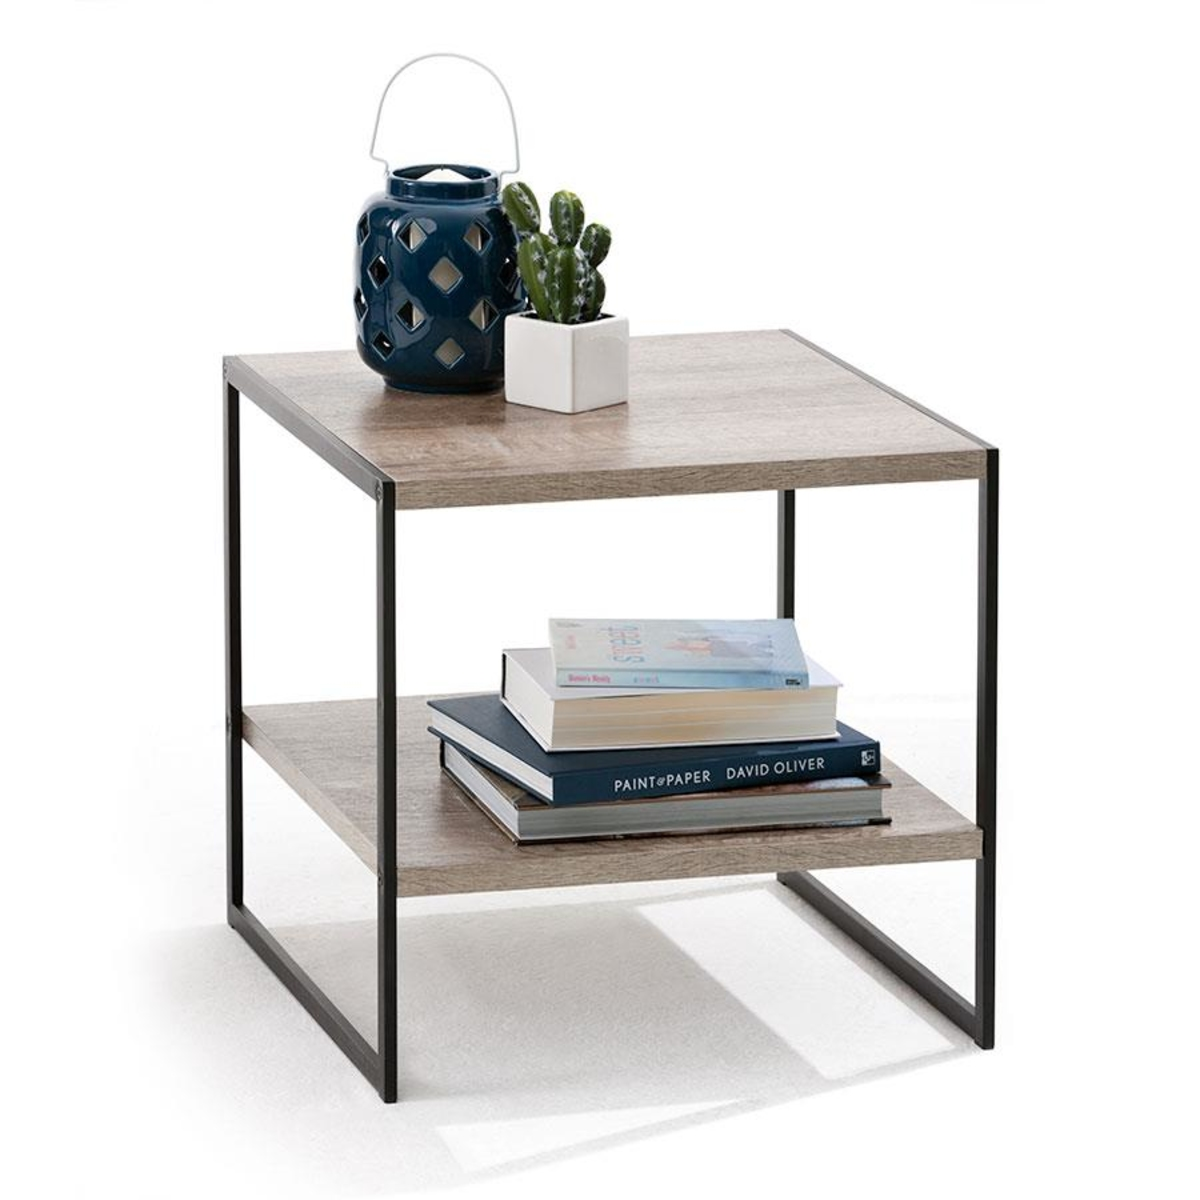 Kmart Website | Kmart Bookshelves | Kmart Storage Cubes